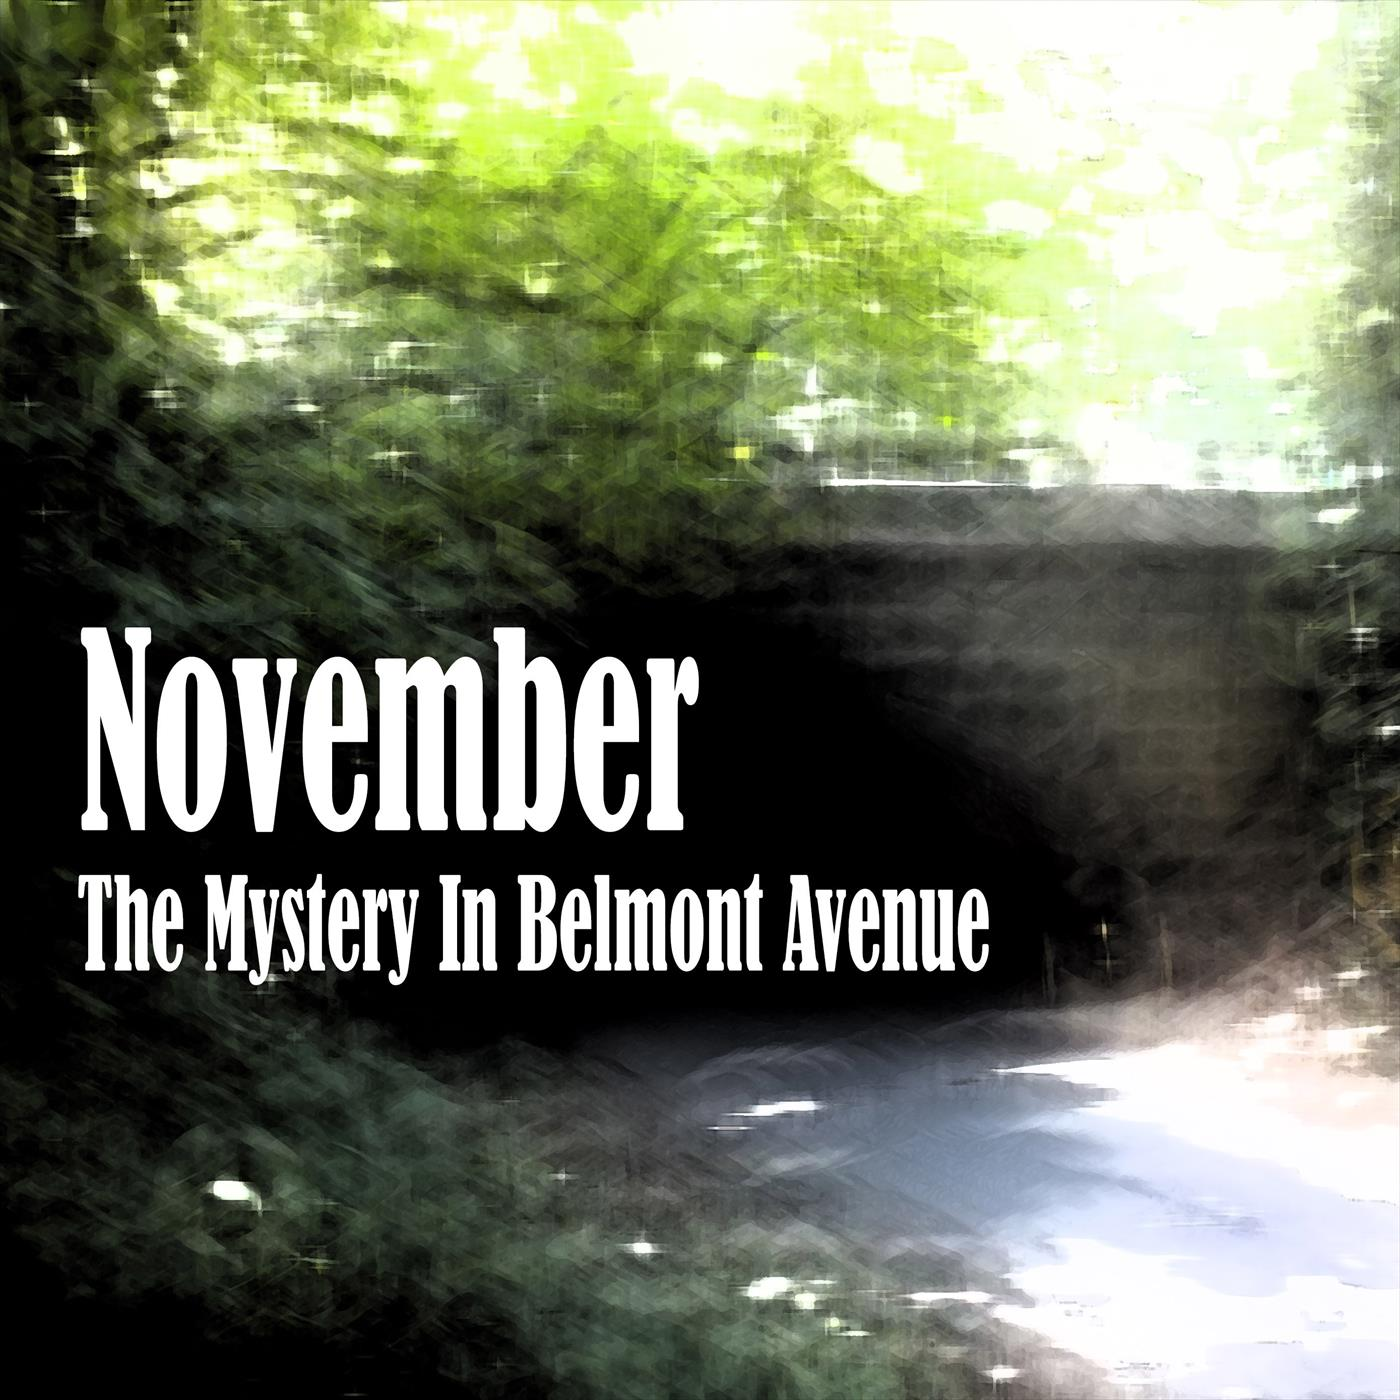 The Mystery in Belmont Avenue